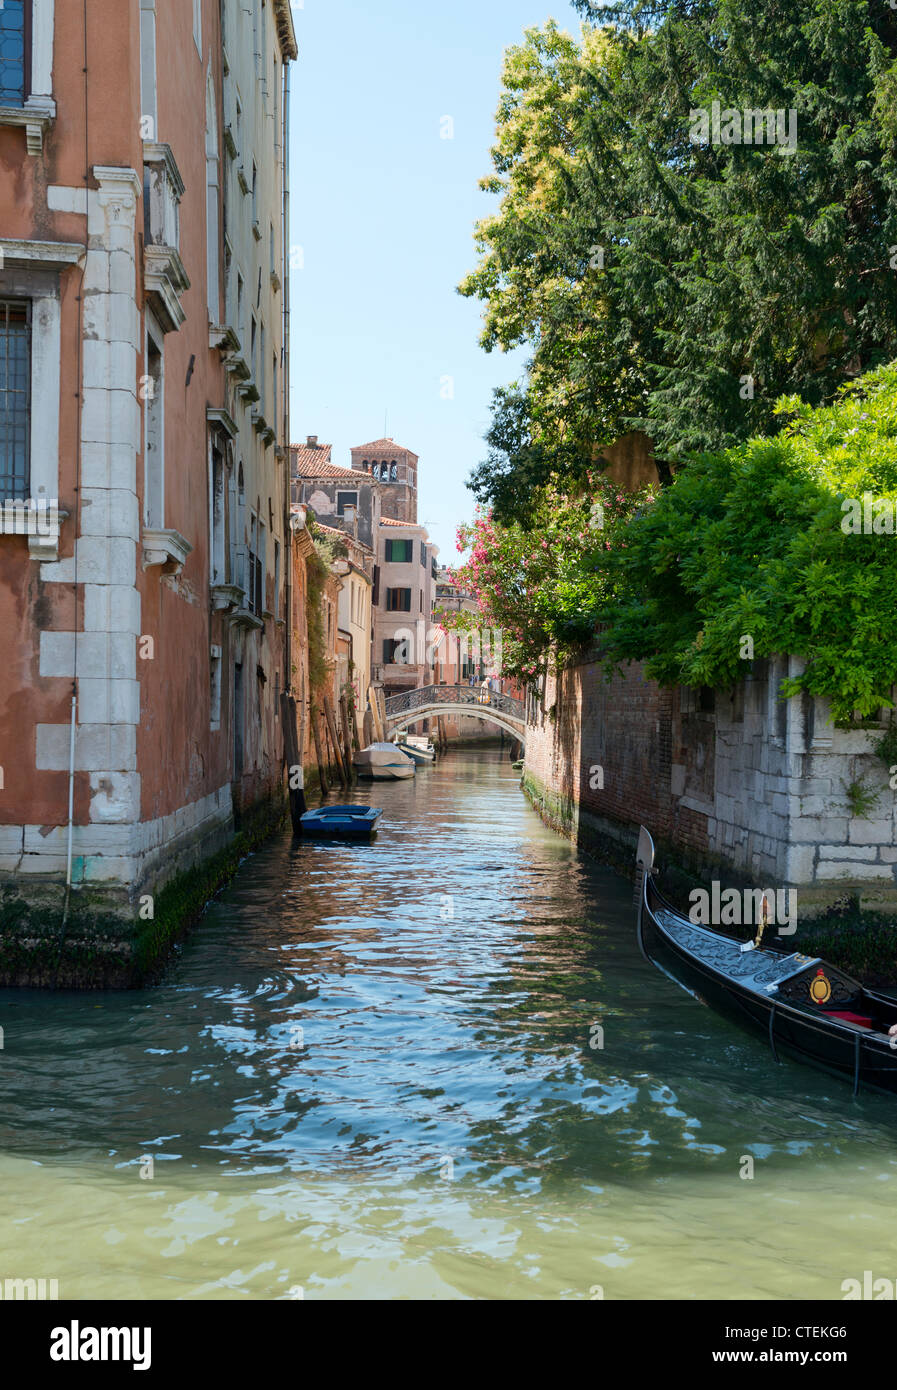 Buildings on the Grand Canal Venice Italy Stock Photo